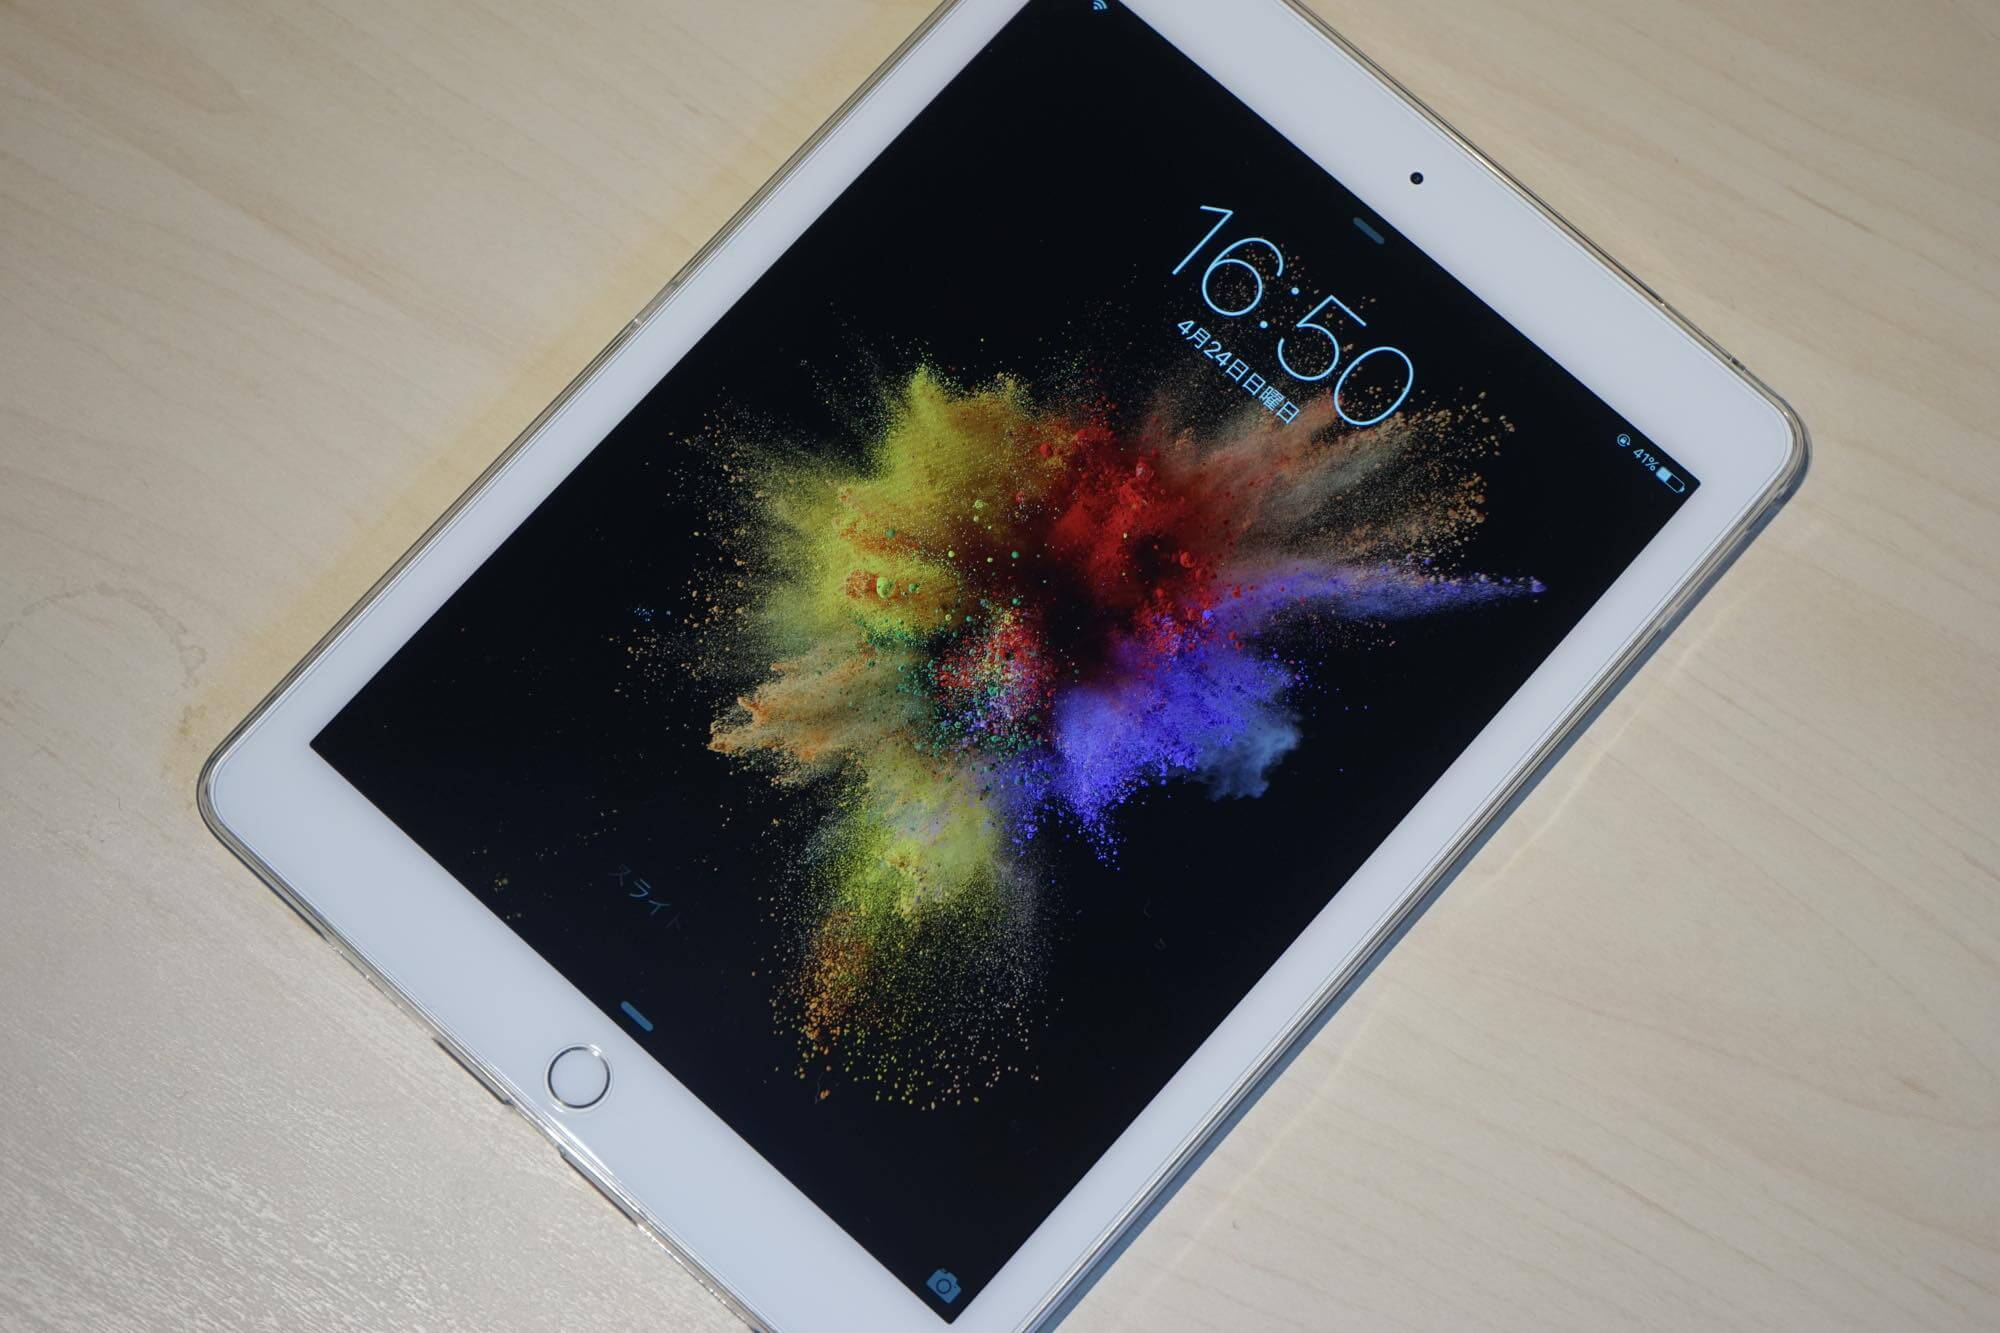 th_9-7ipadpro-review4